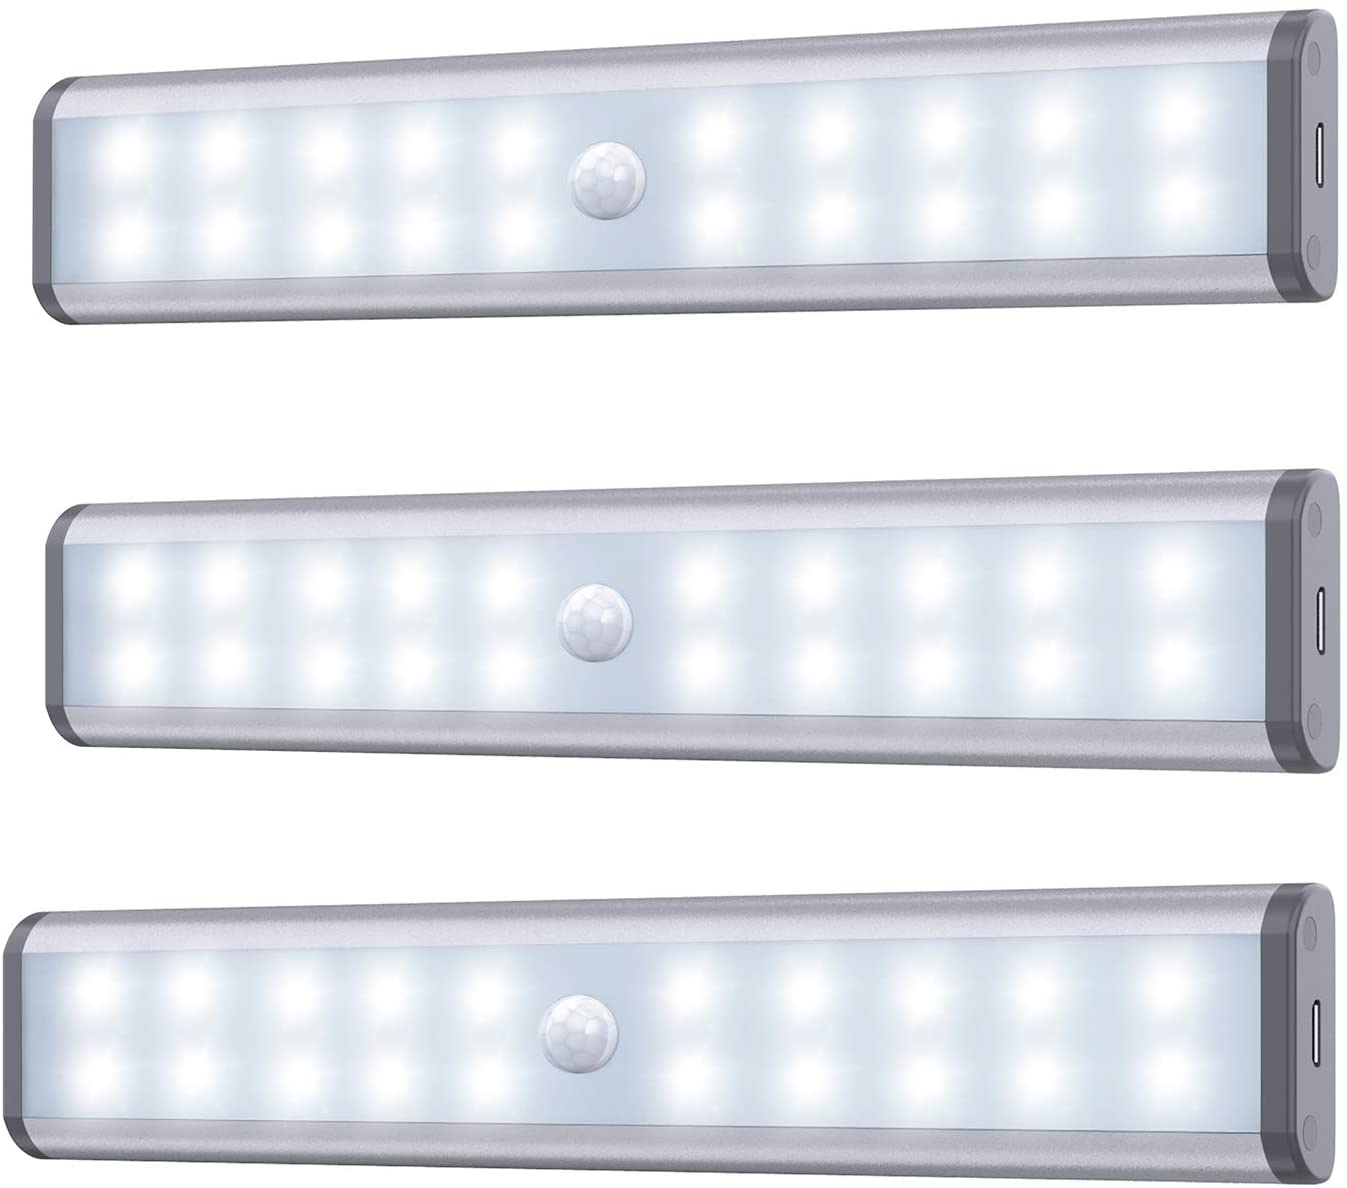 20LED Closet Light with Motion Sensor, Stick-on Anywhere Portable Little Lights Build in Rechargeable Battery Magnetic Tap Lights for Closet, Cabinet